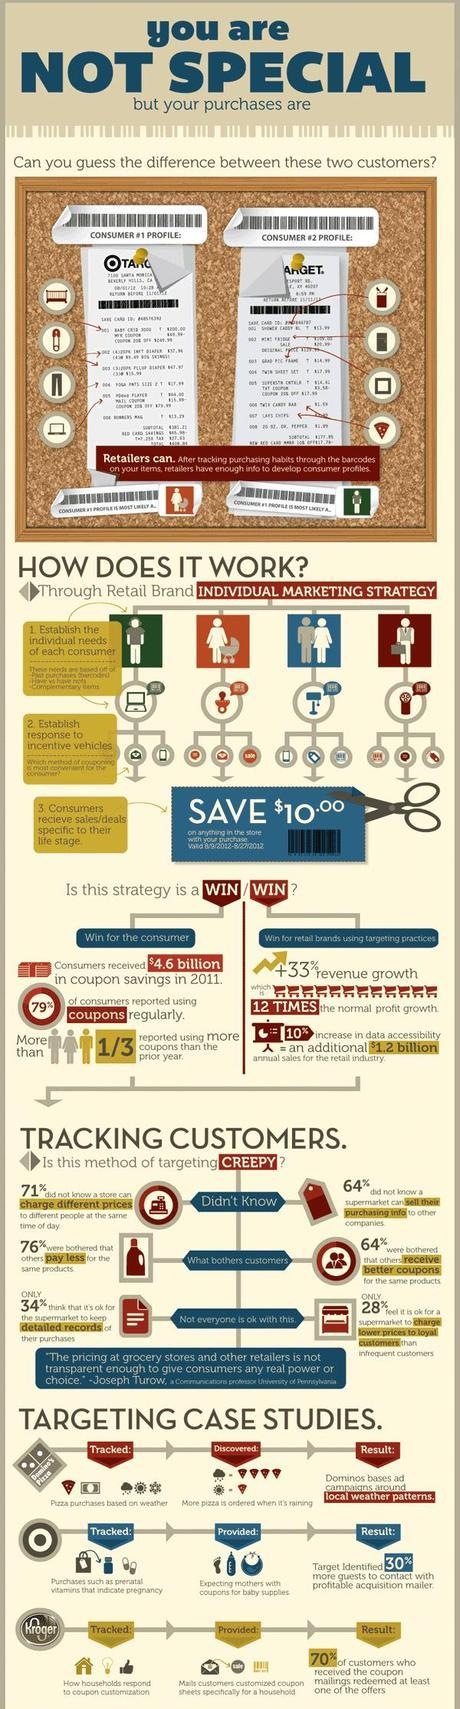 Infographic on Customer Targeting by Retailers